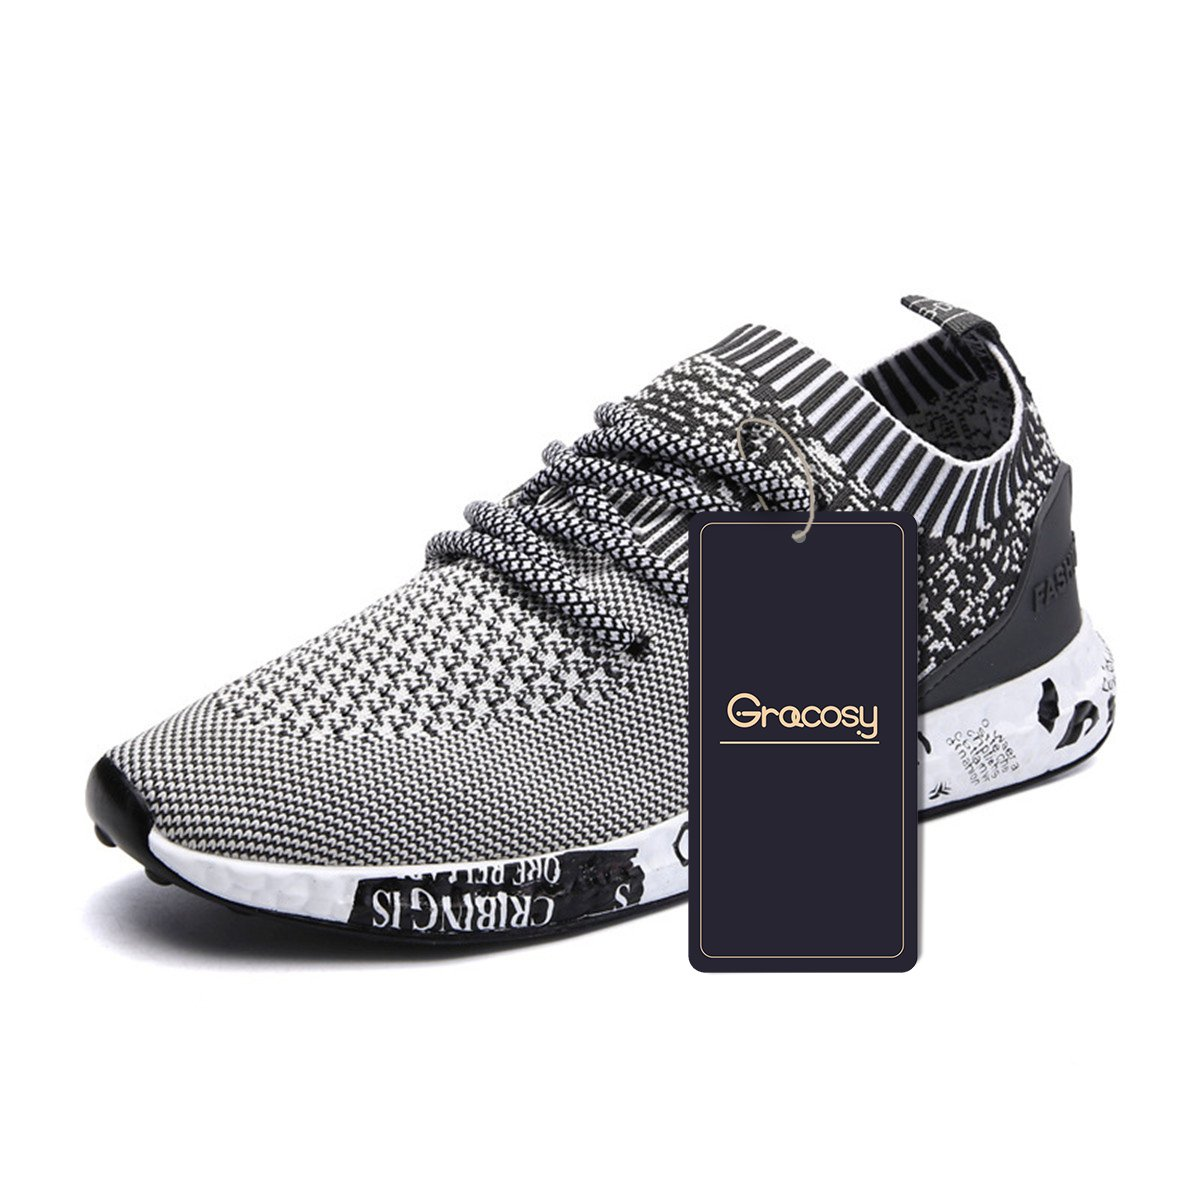 gracosy Casual Sport Shoes, Men's Lightweight Daily Walking Shoes Athletic Sports Shoes Breathable Fashion Sneakers Grey 41 EU